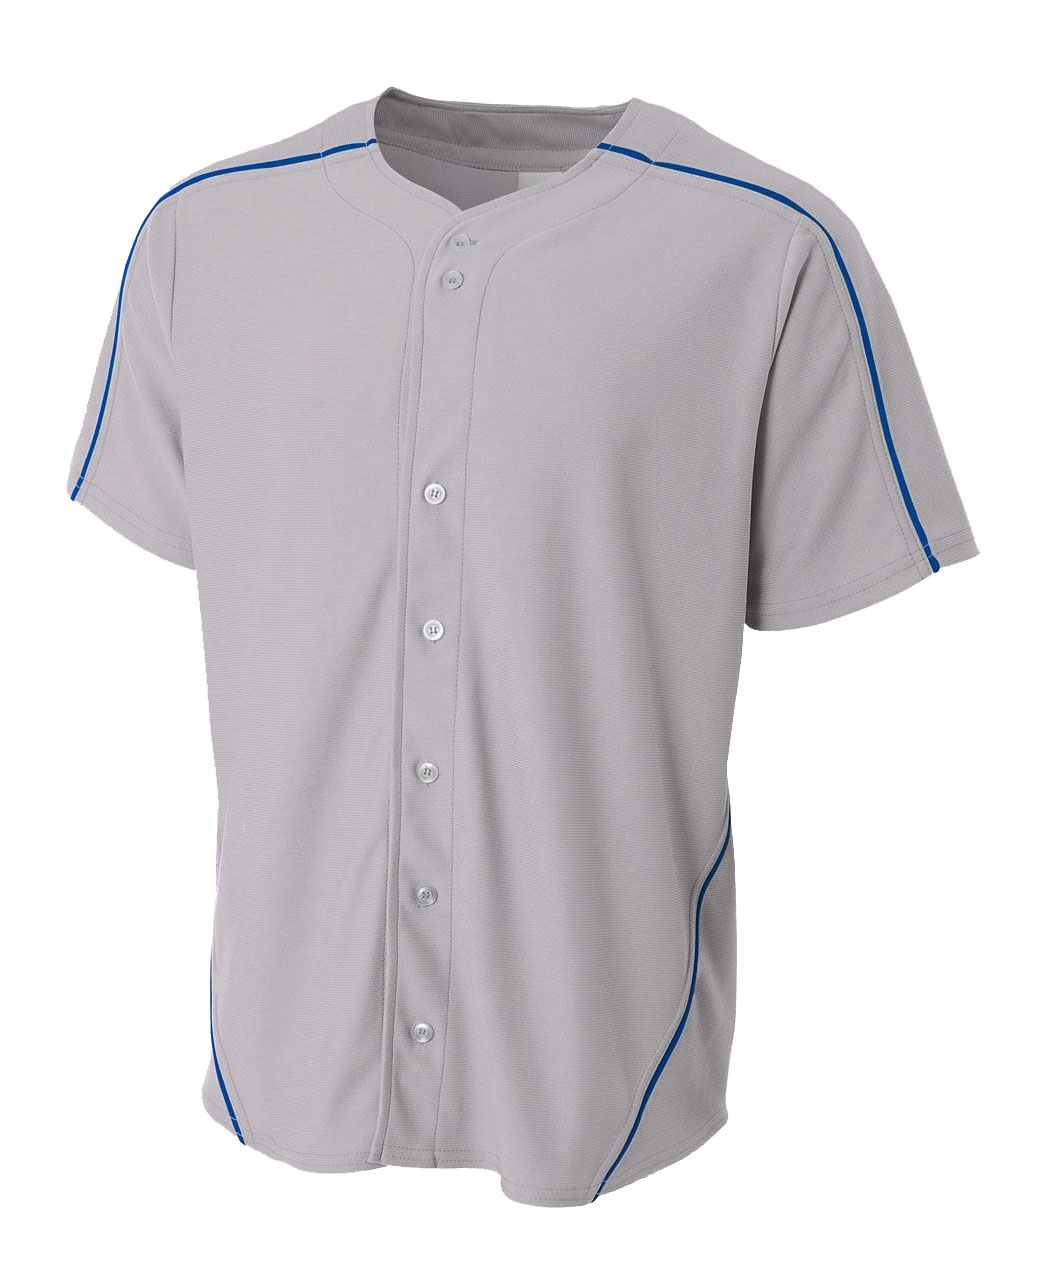 Mens Warp Knit Baseball Jersey